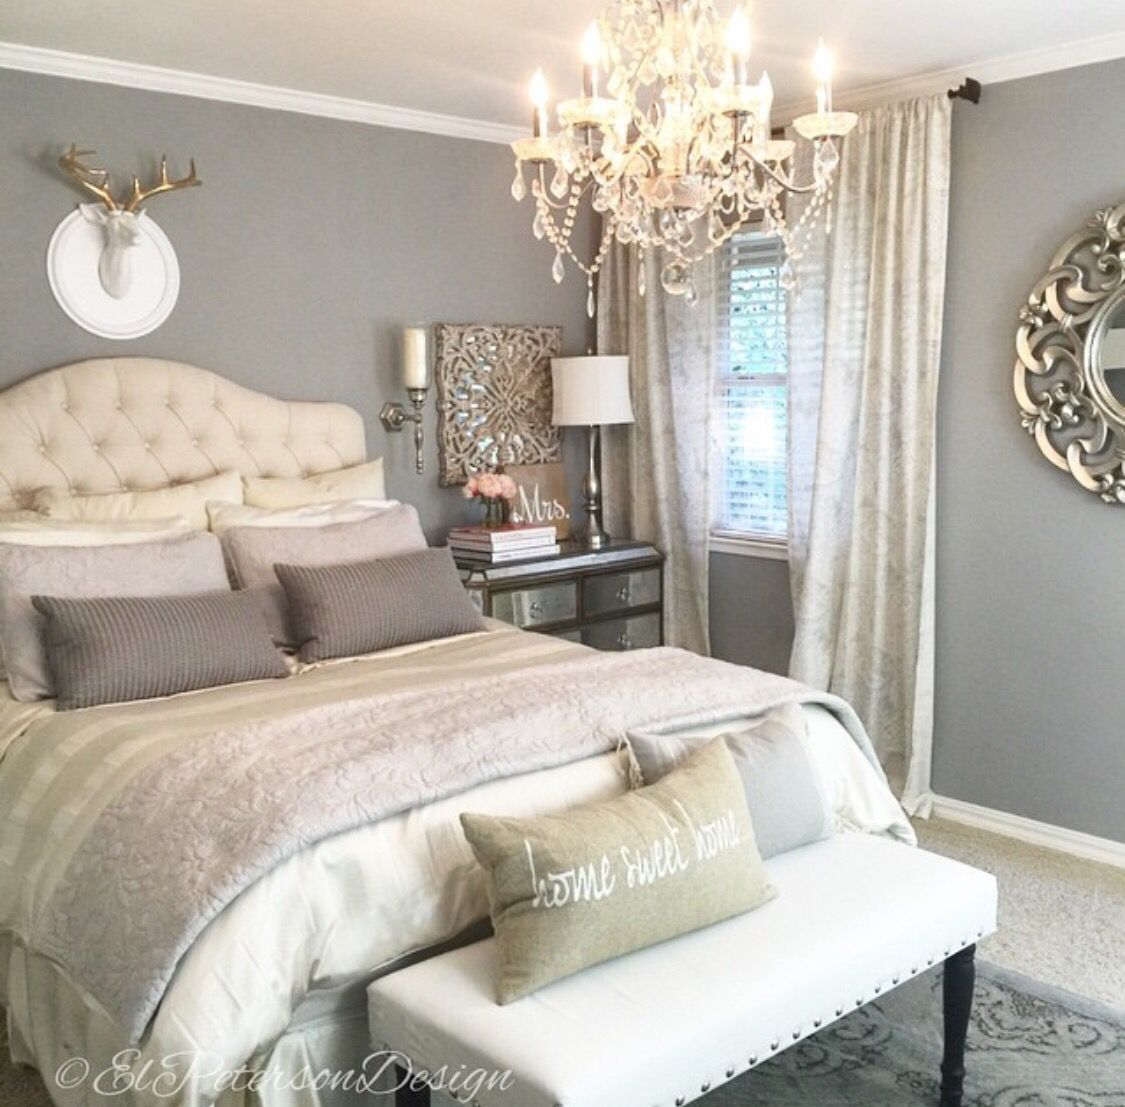 Design An Elegant Bedroom In 5 Easy Steps: ElPetersonDesign Master Bedroom Design. Elegant And Chic